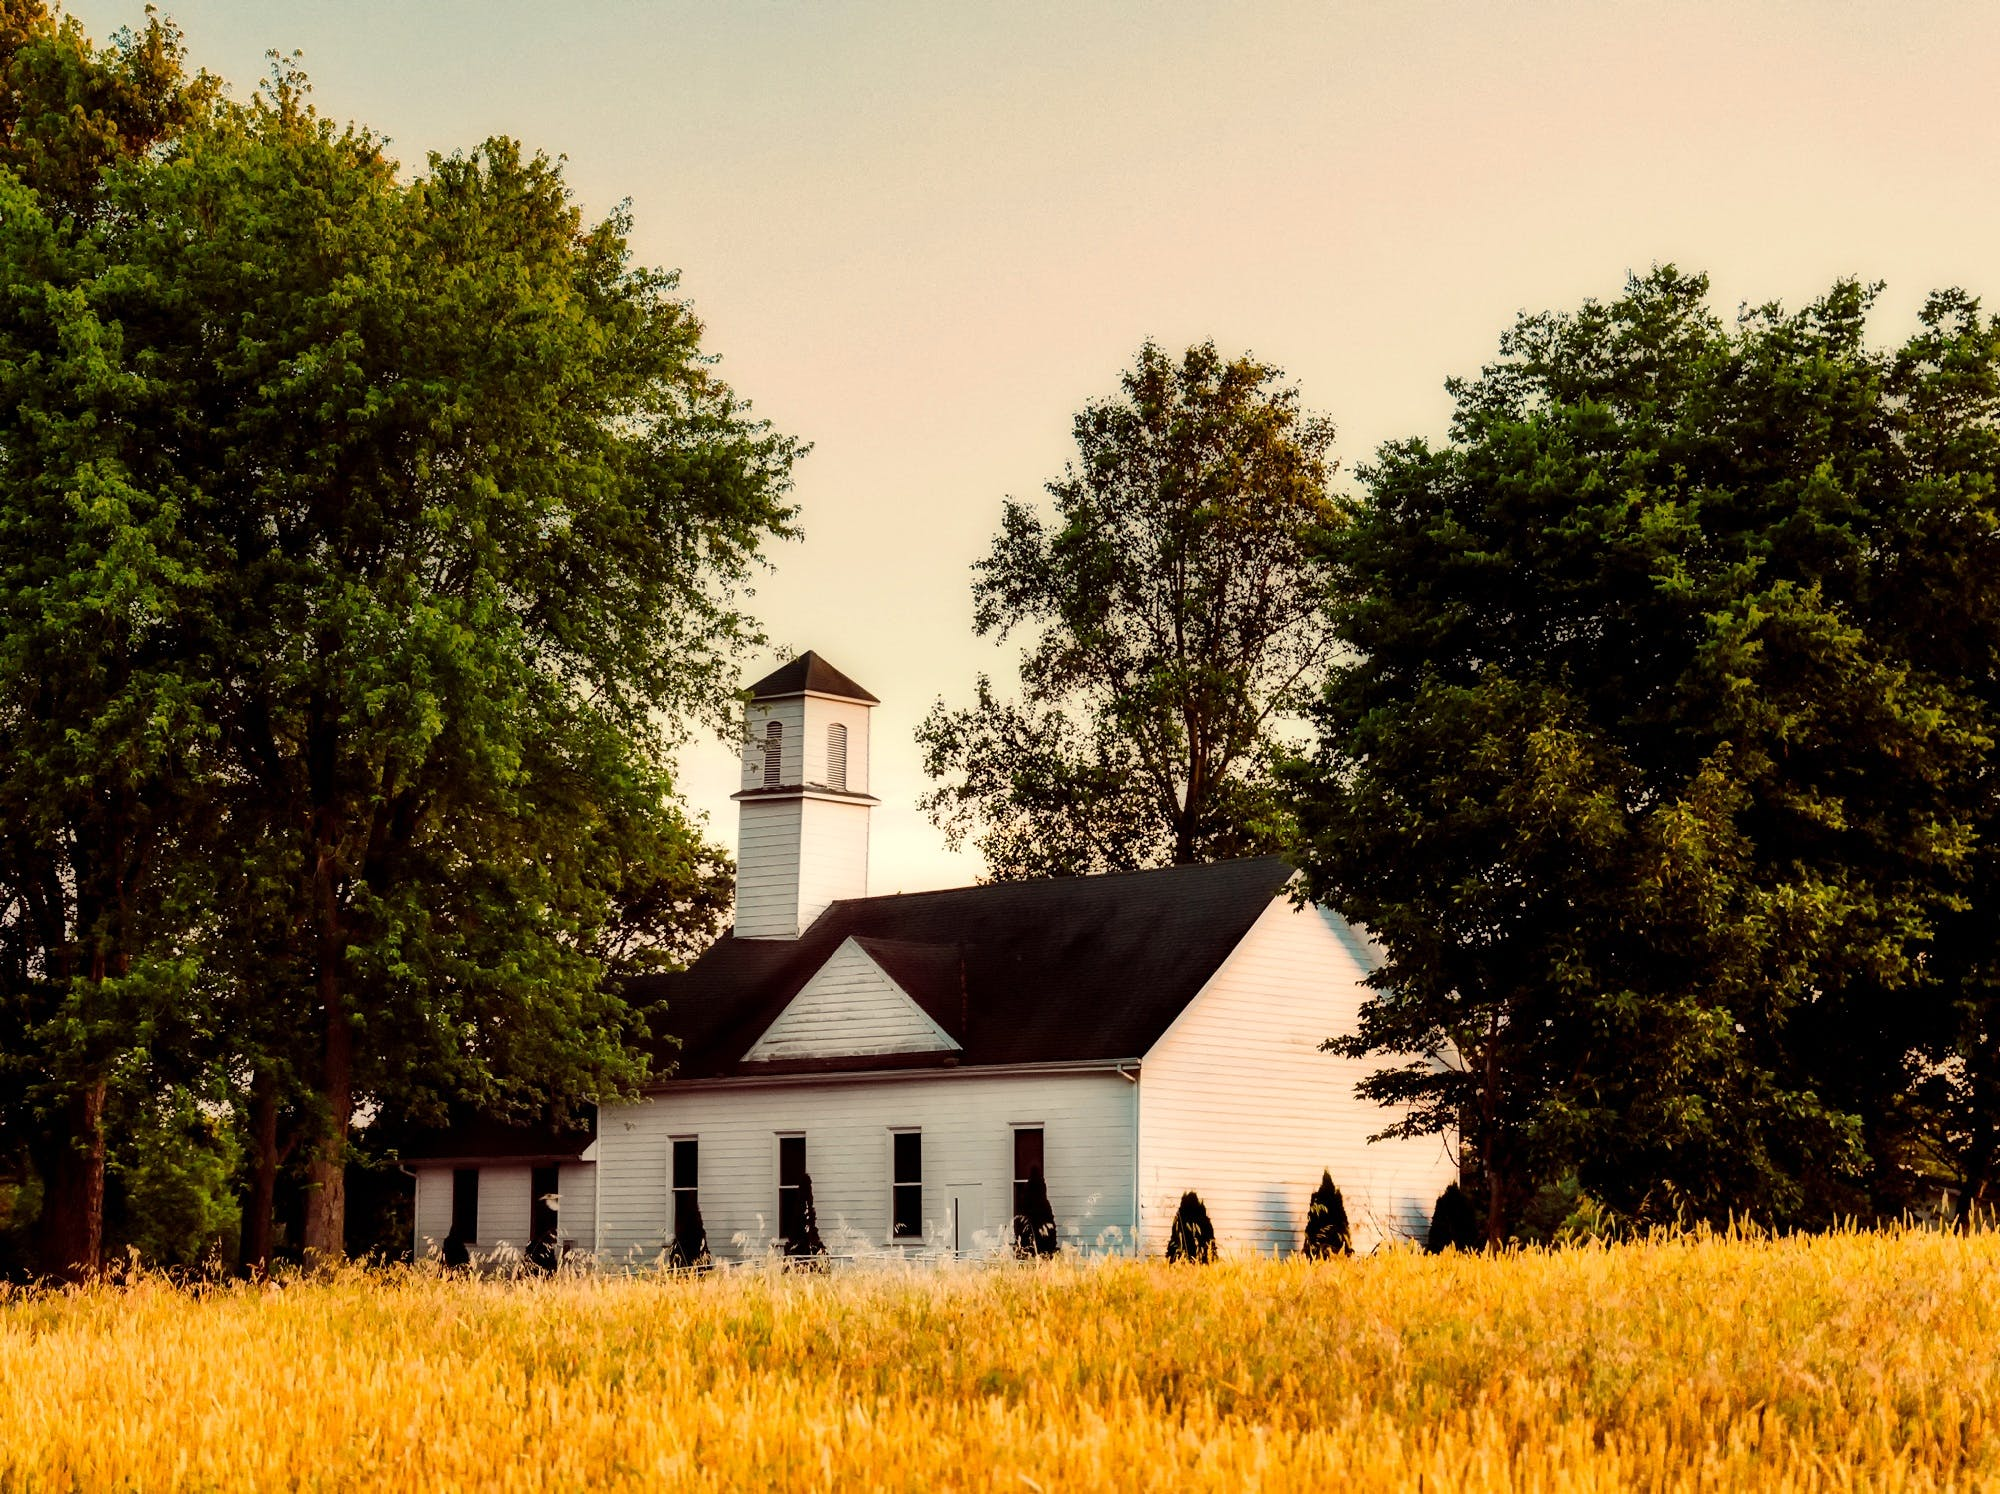 chapel, clear sky, countryside